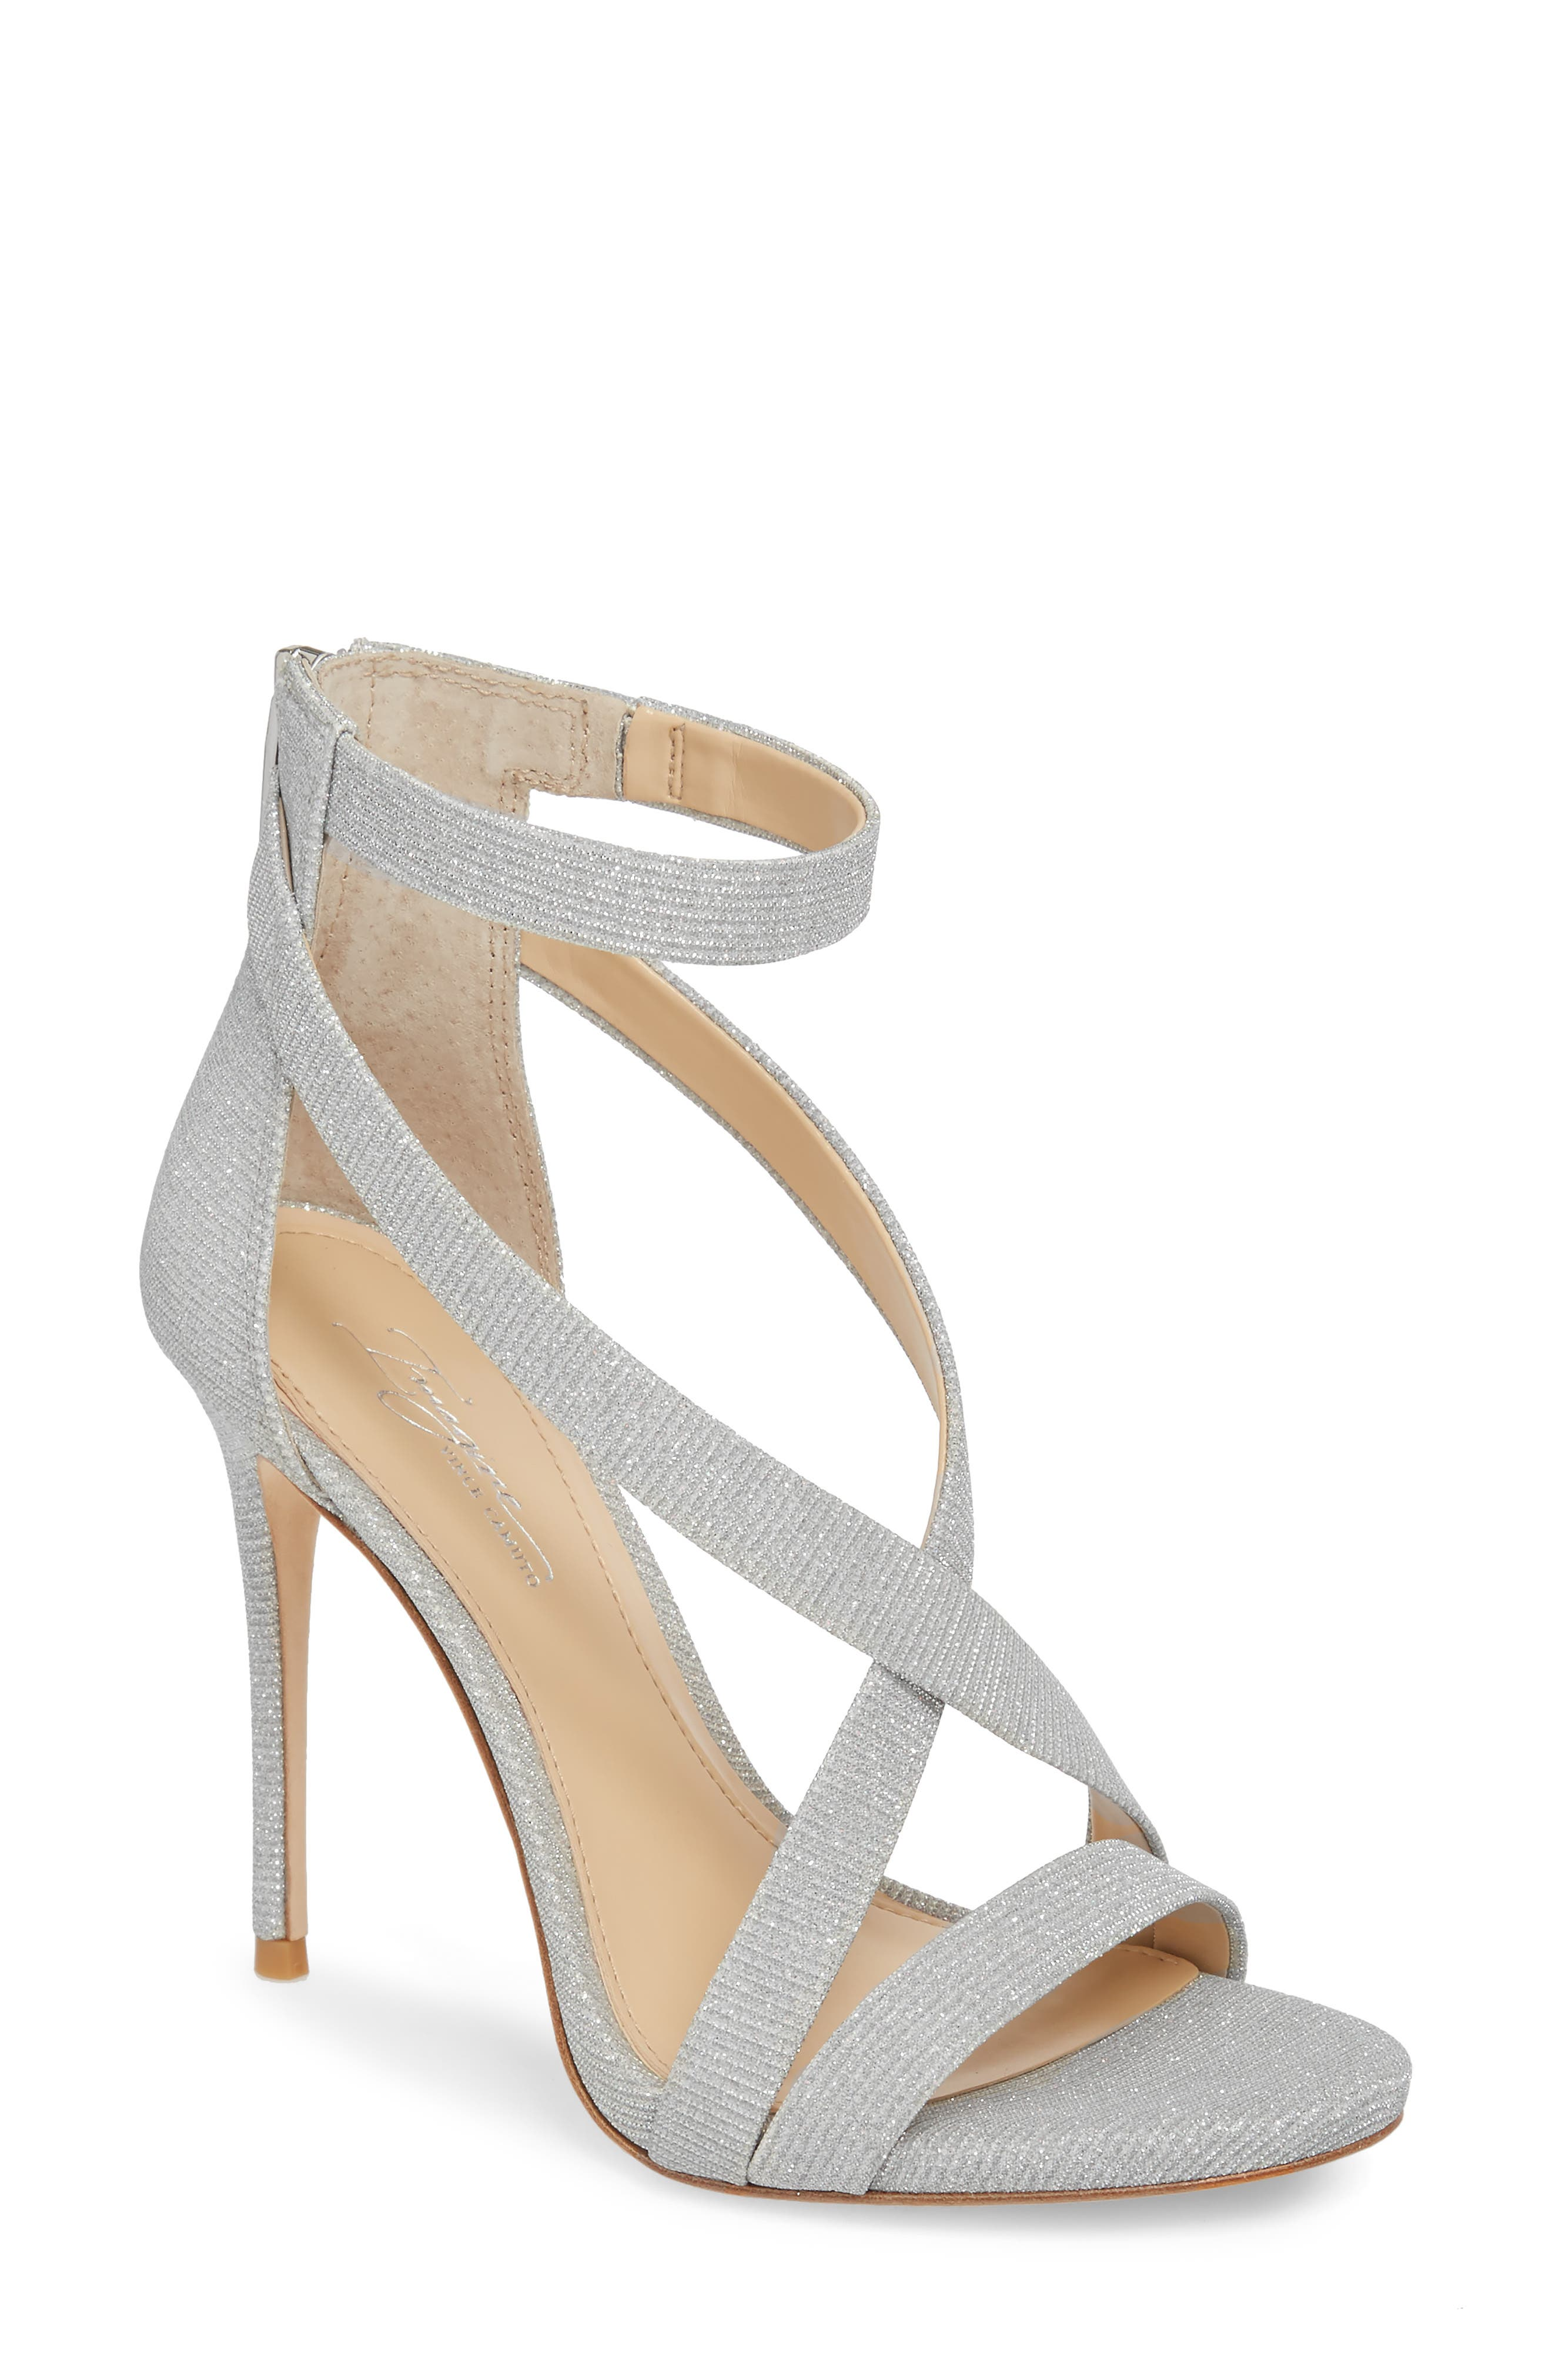 Imagine Vince Camuto 'Devin' Sandal,                             Main thumbnail 1, color,                             PLATINUM FABRIC